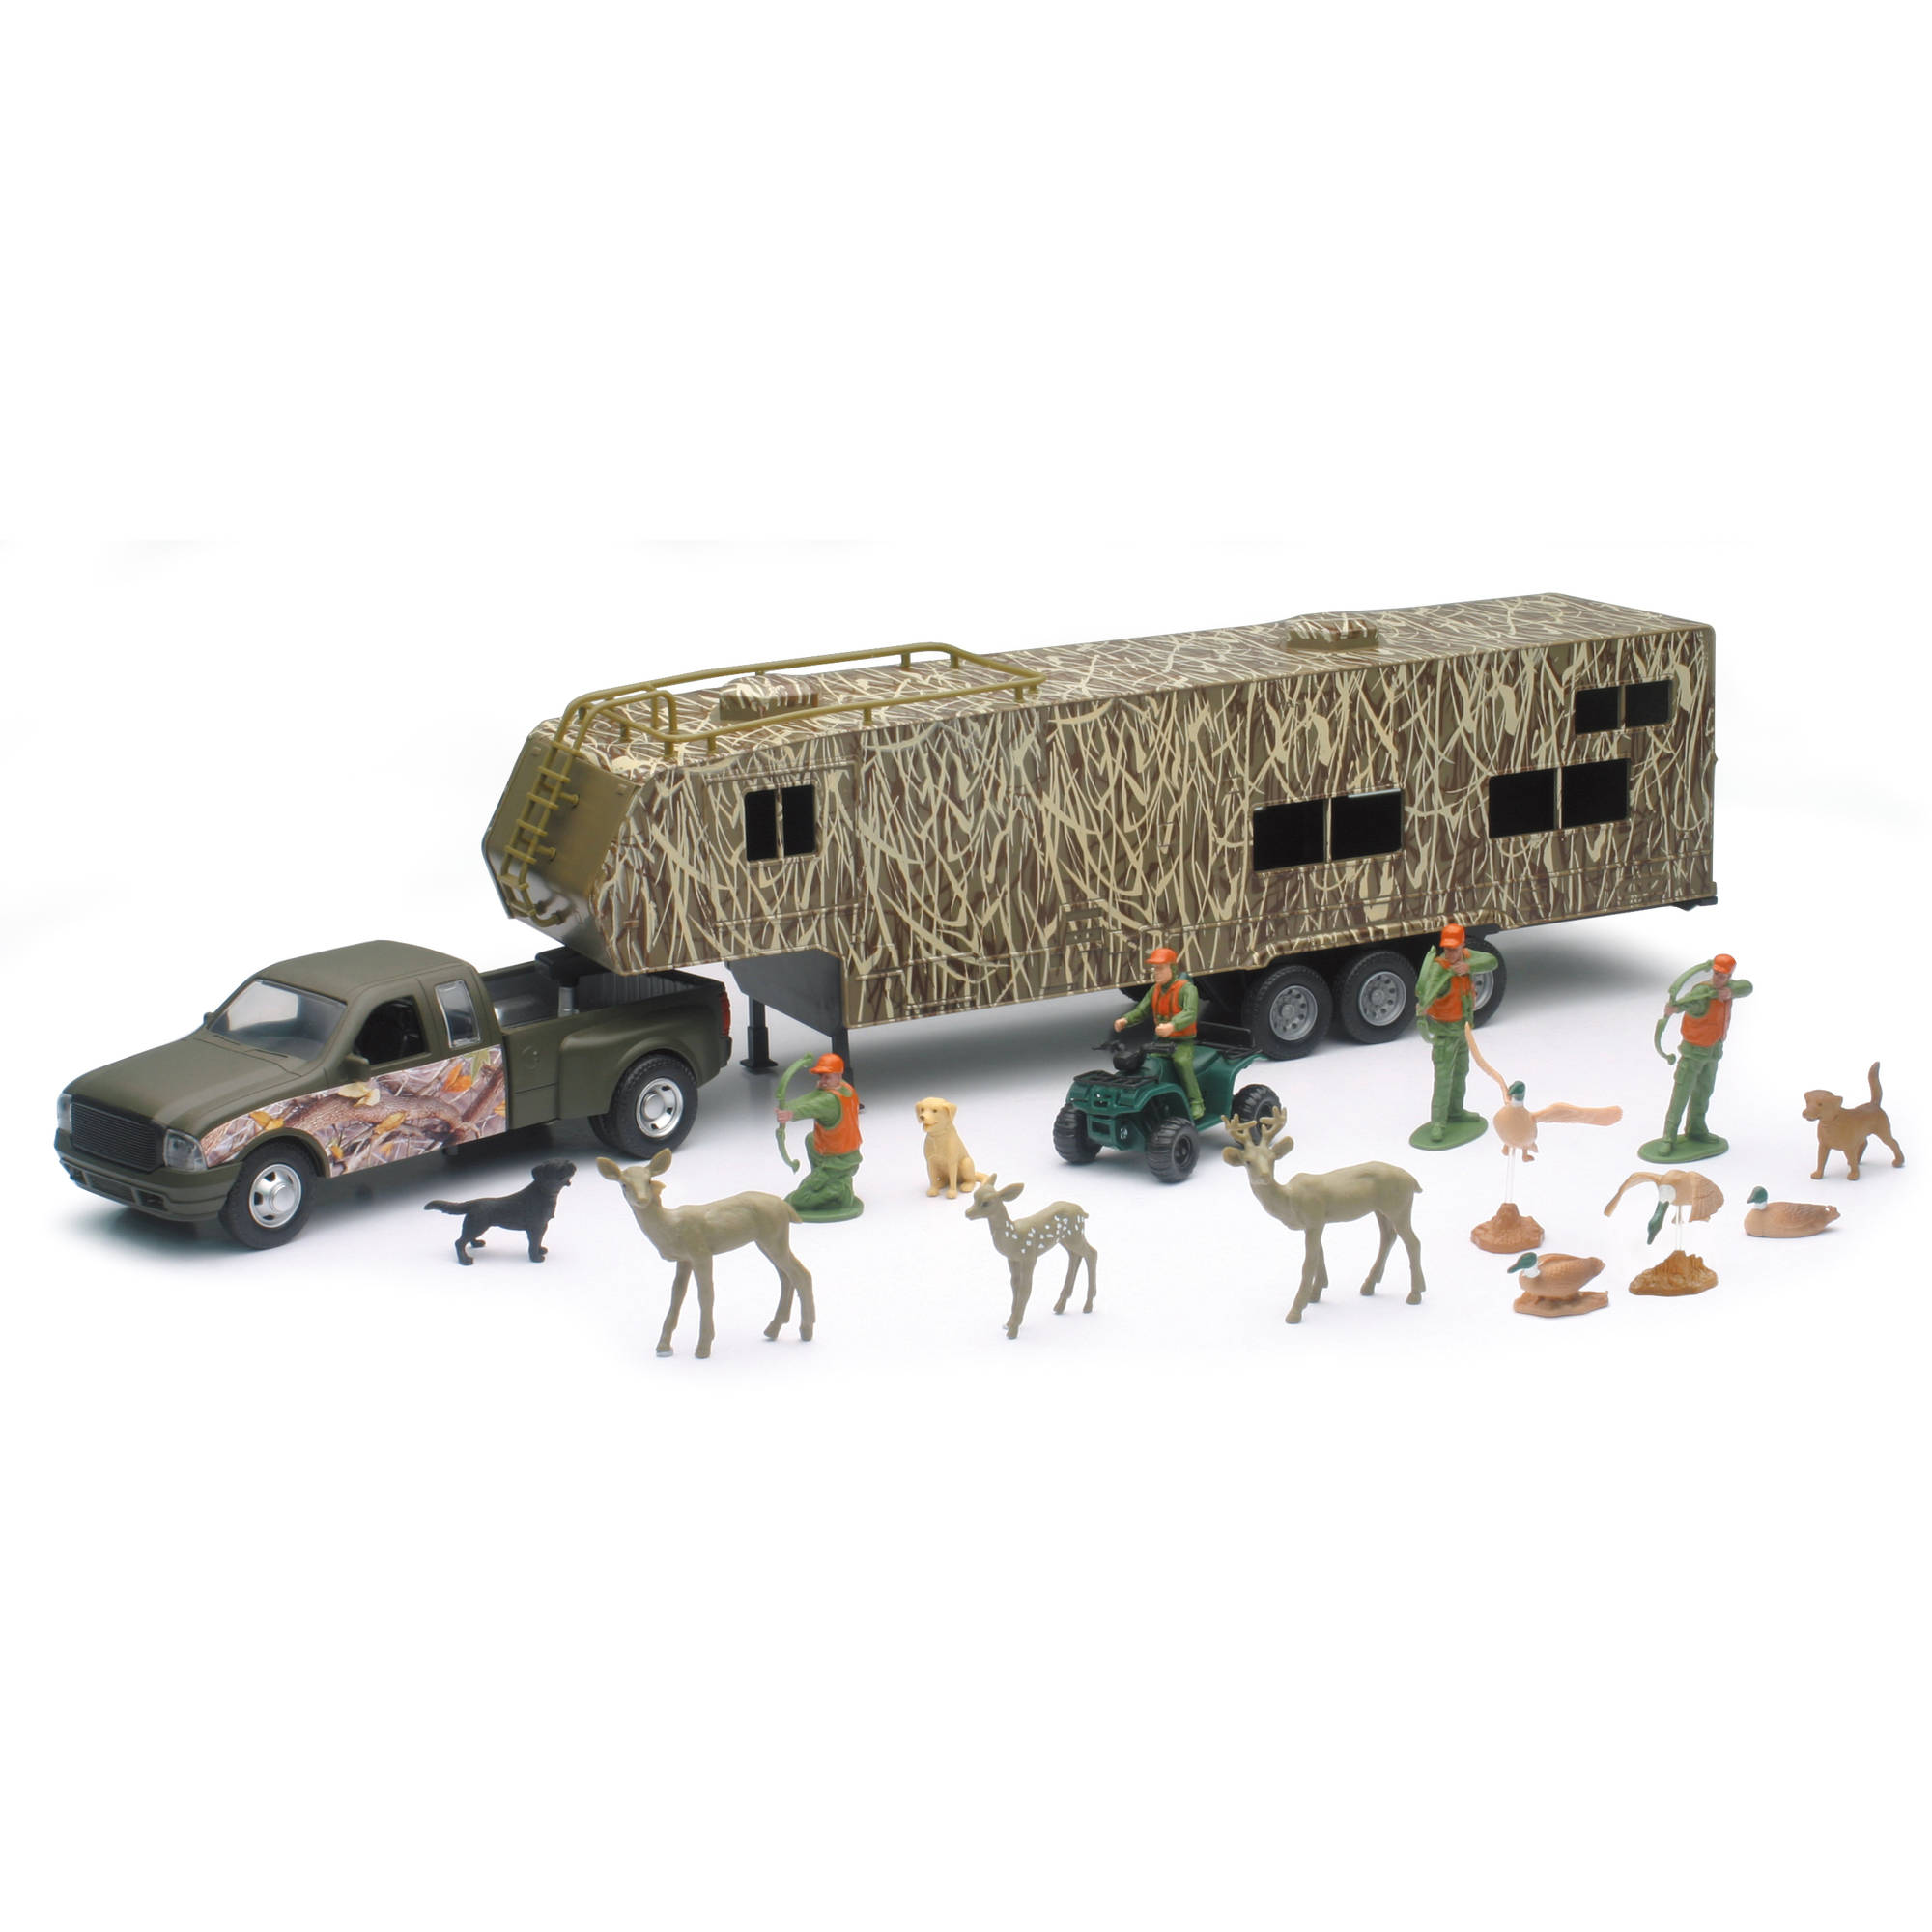 Wildlife Hunter Die Cast Fifth Wheel with Camo Camper and Deer Set by Dongguan Popak New-Ray Toys Manufacturing Ltd